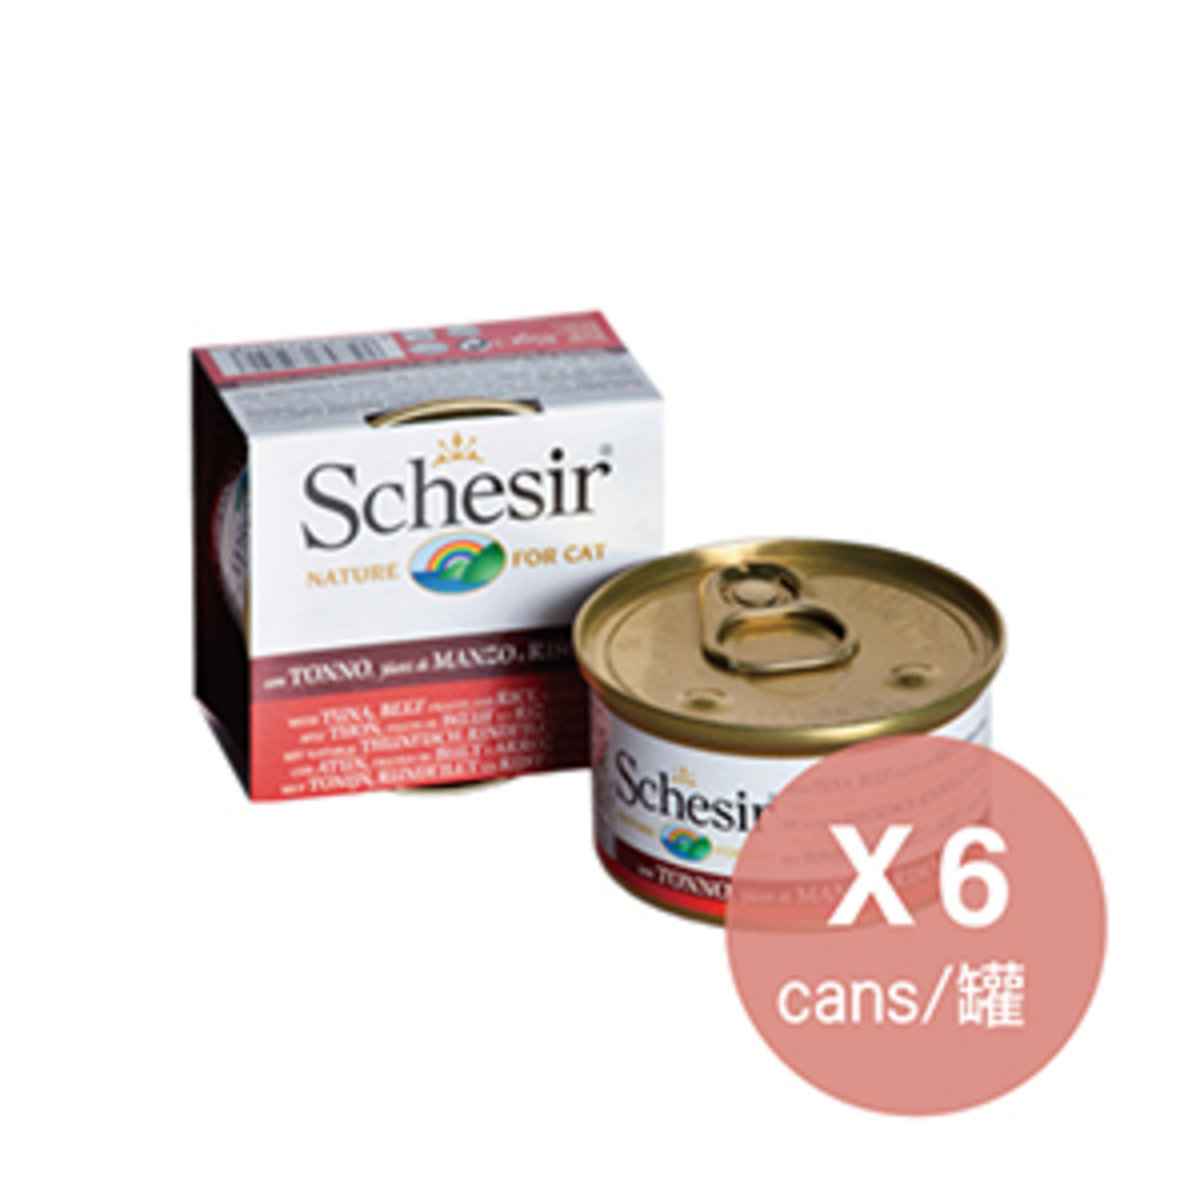 Schesir Tuna and Beef with Rice NatSt for Cat 85g x6